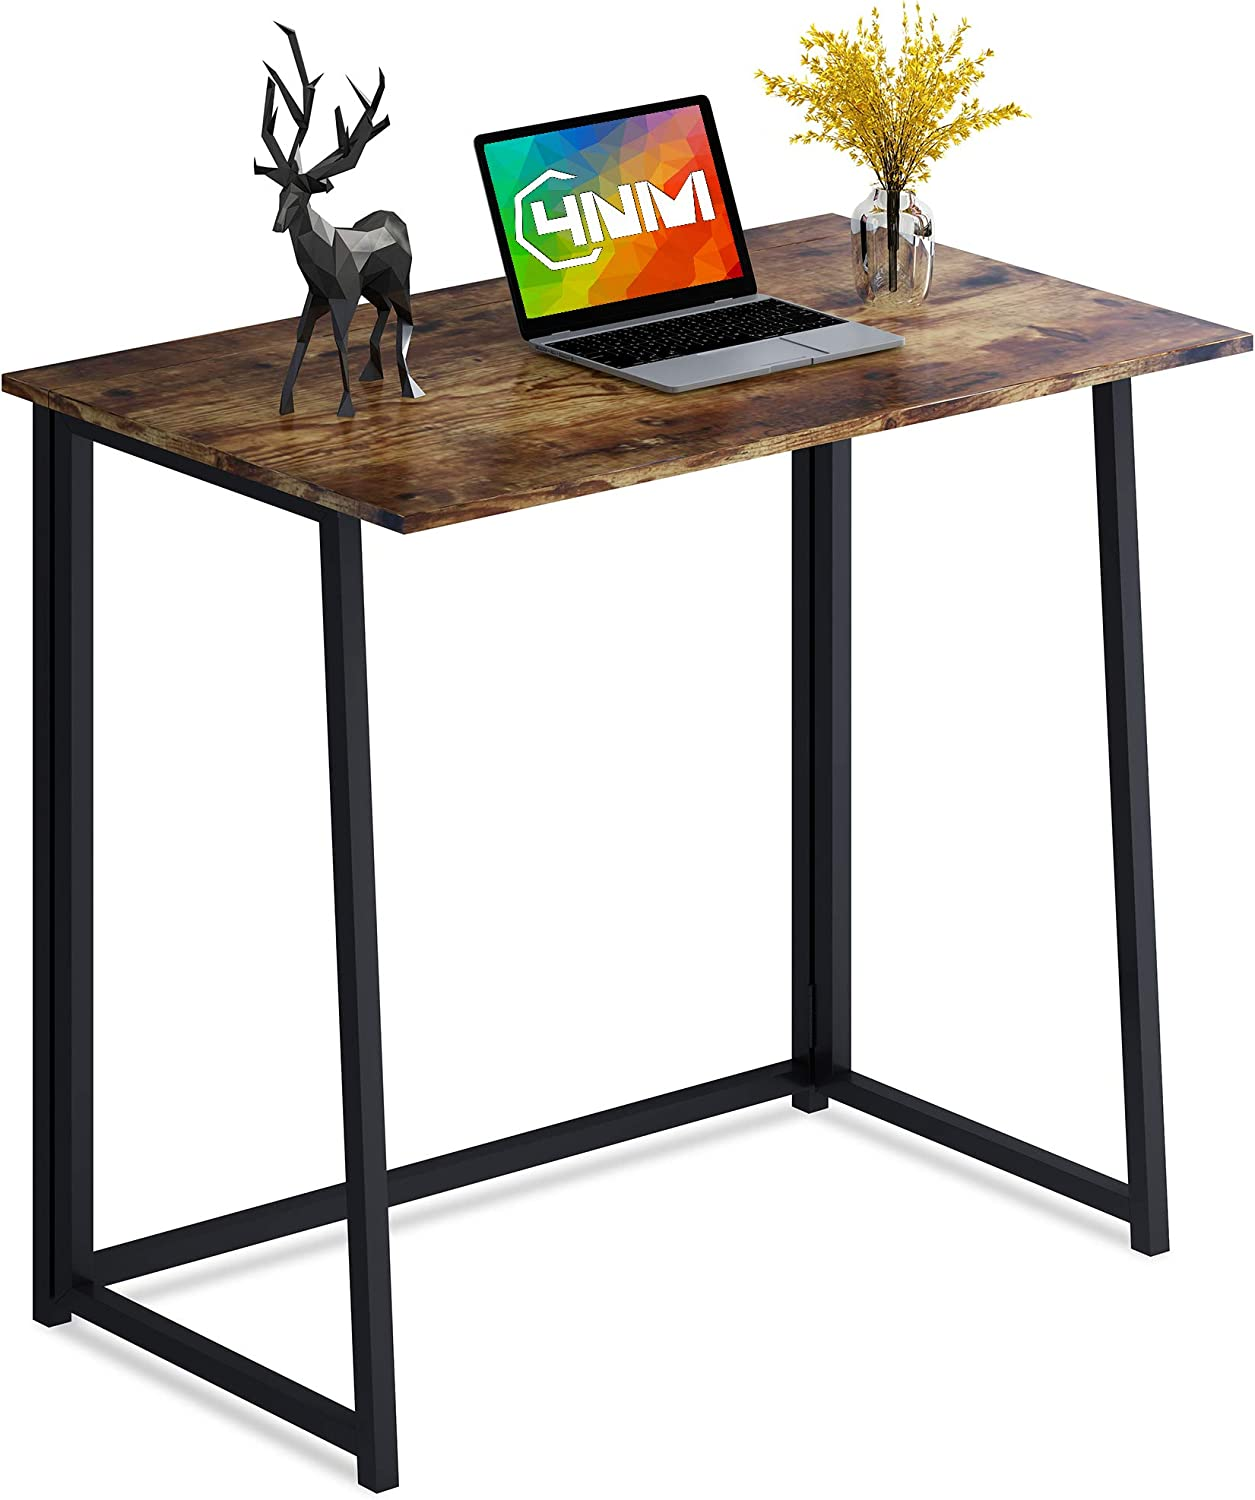 4NM Folding Desk, Small Computer Desk Home Office Desk Foldable Table Workstation for Small Places (Rustic Brown and Black)